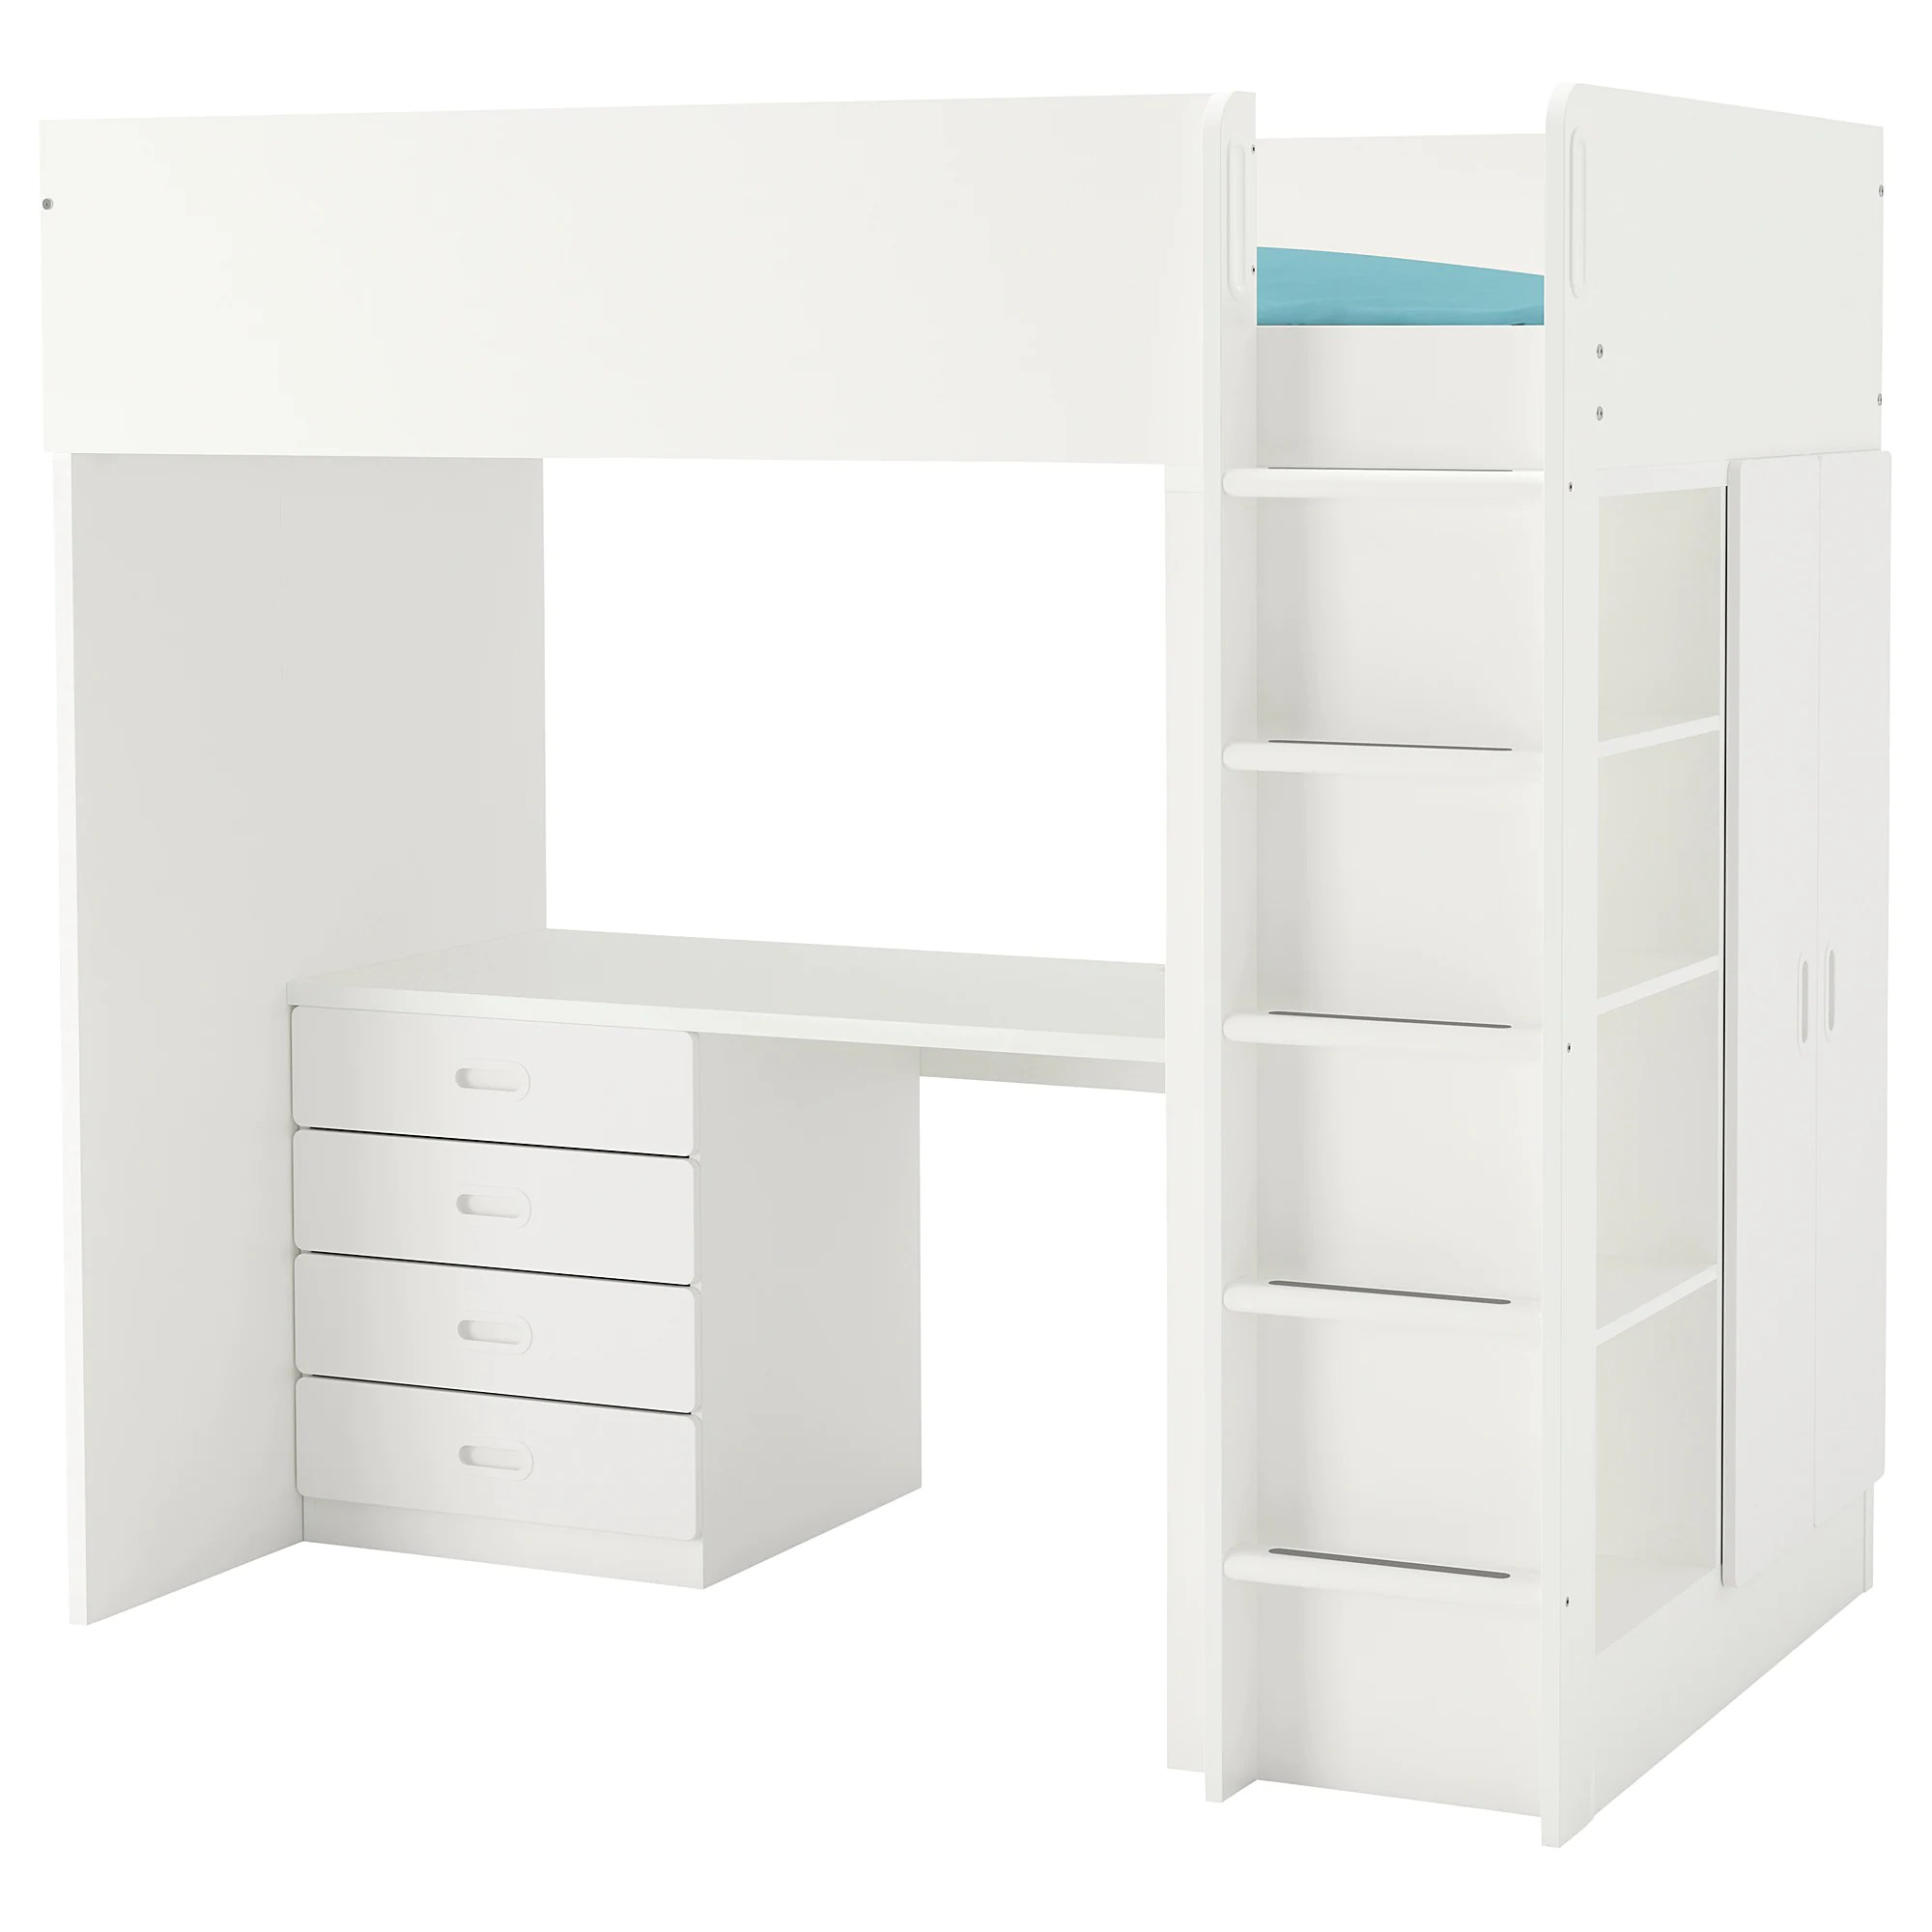 Stuva Lit Stuva Fritids Loft Bed With 4 Drawers 2 Doors White White